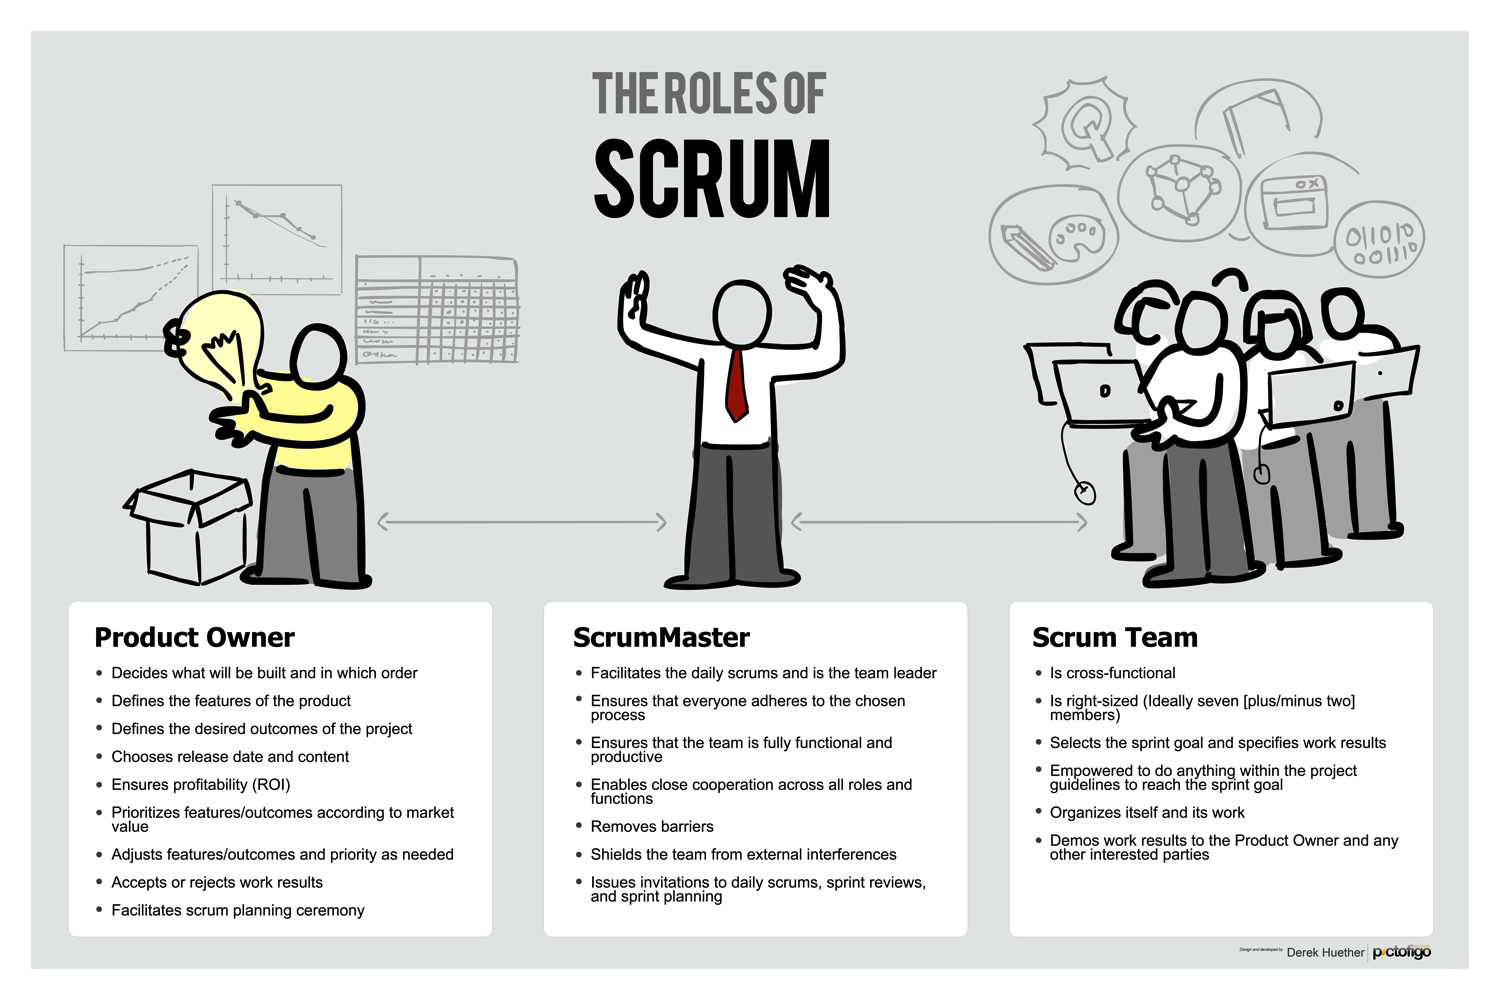 The Roles of Scrum - This is a male ScrumMaster version.Perfect for dressing up any wall, or instantly creating a theme for a room. Images look great on this high-quality poster.Available in 11